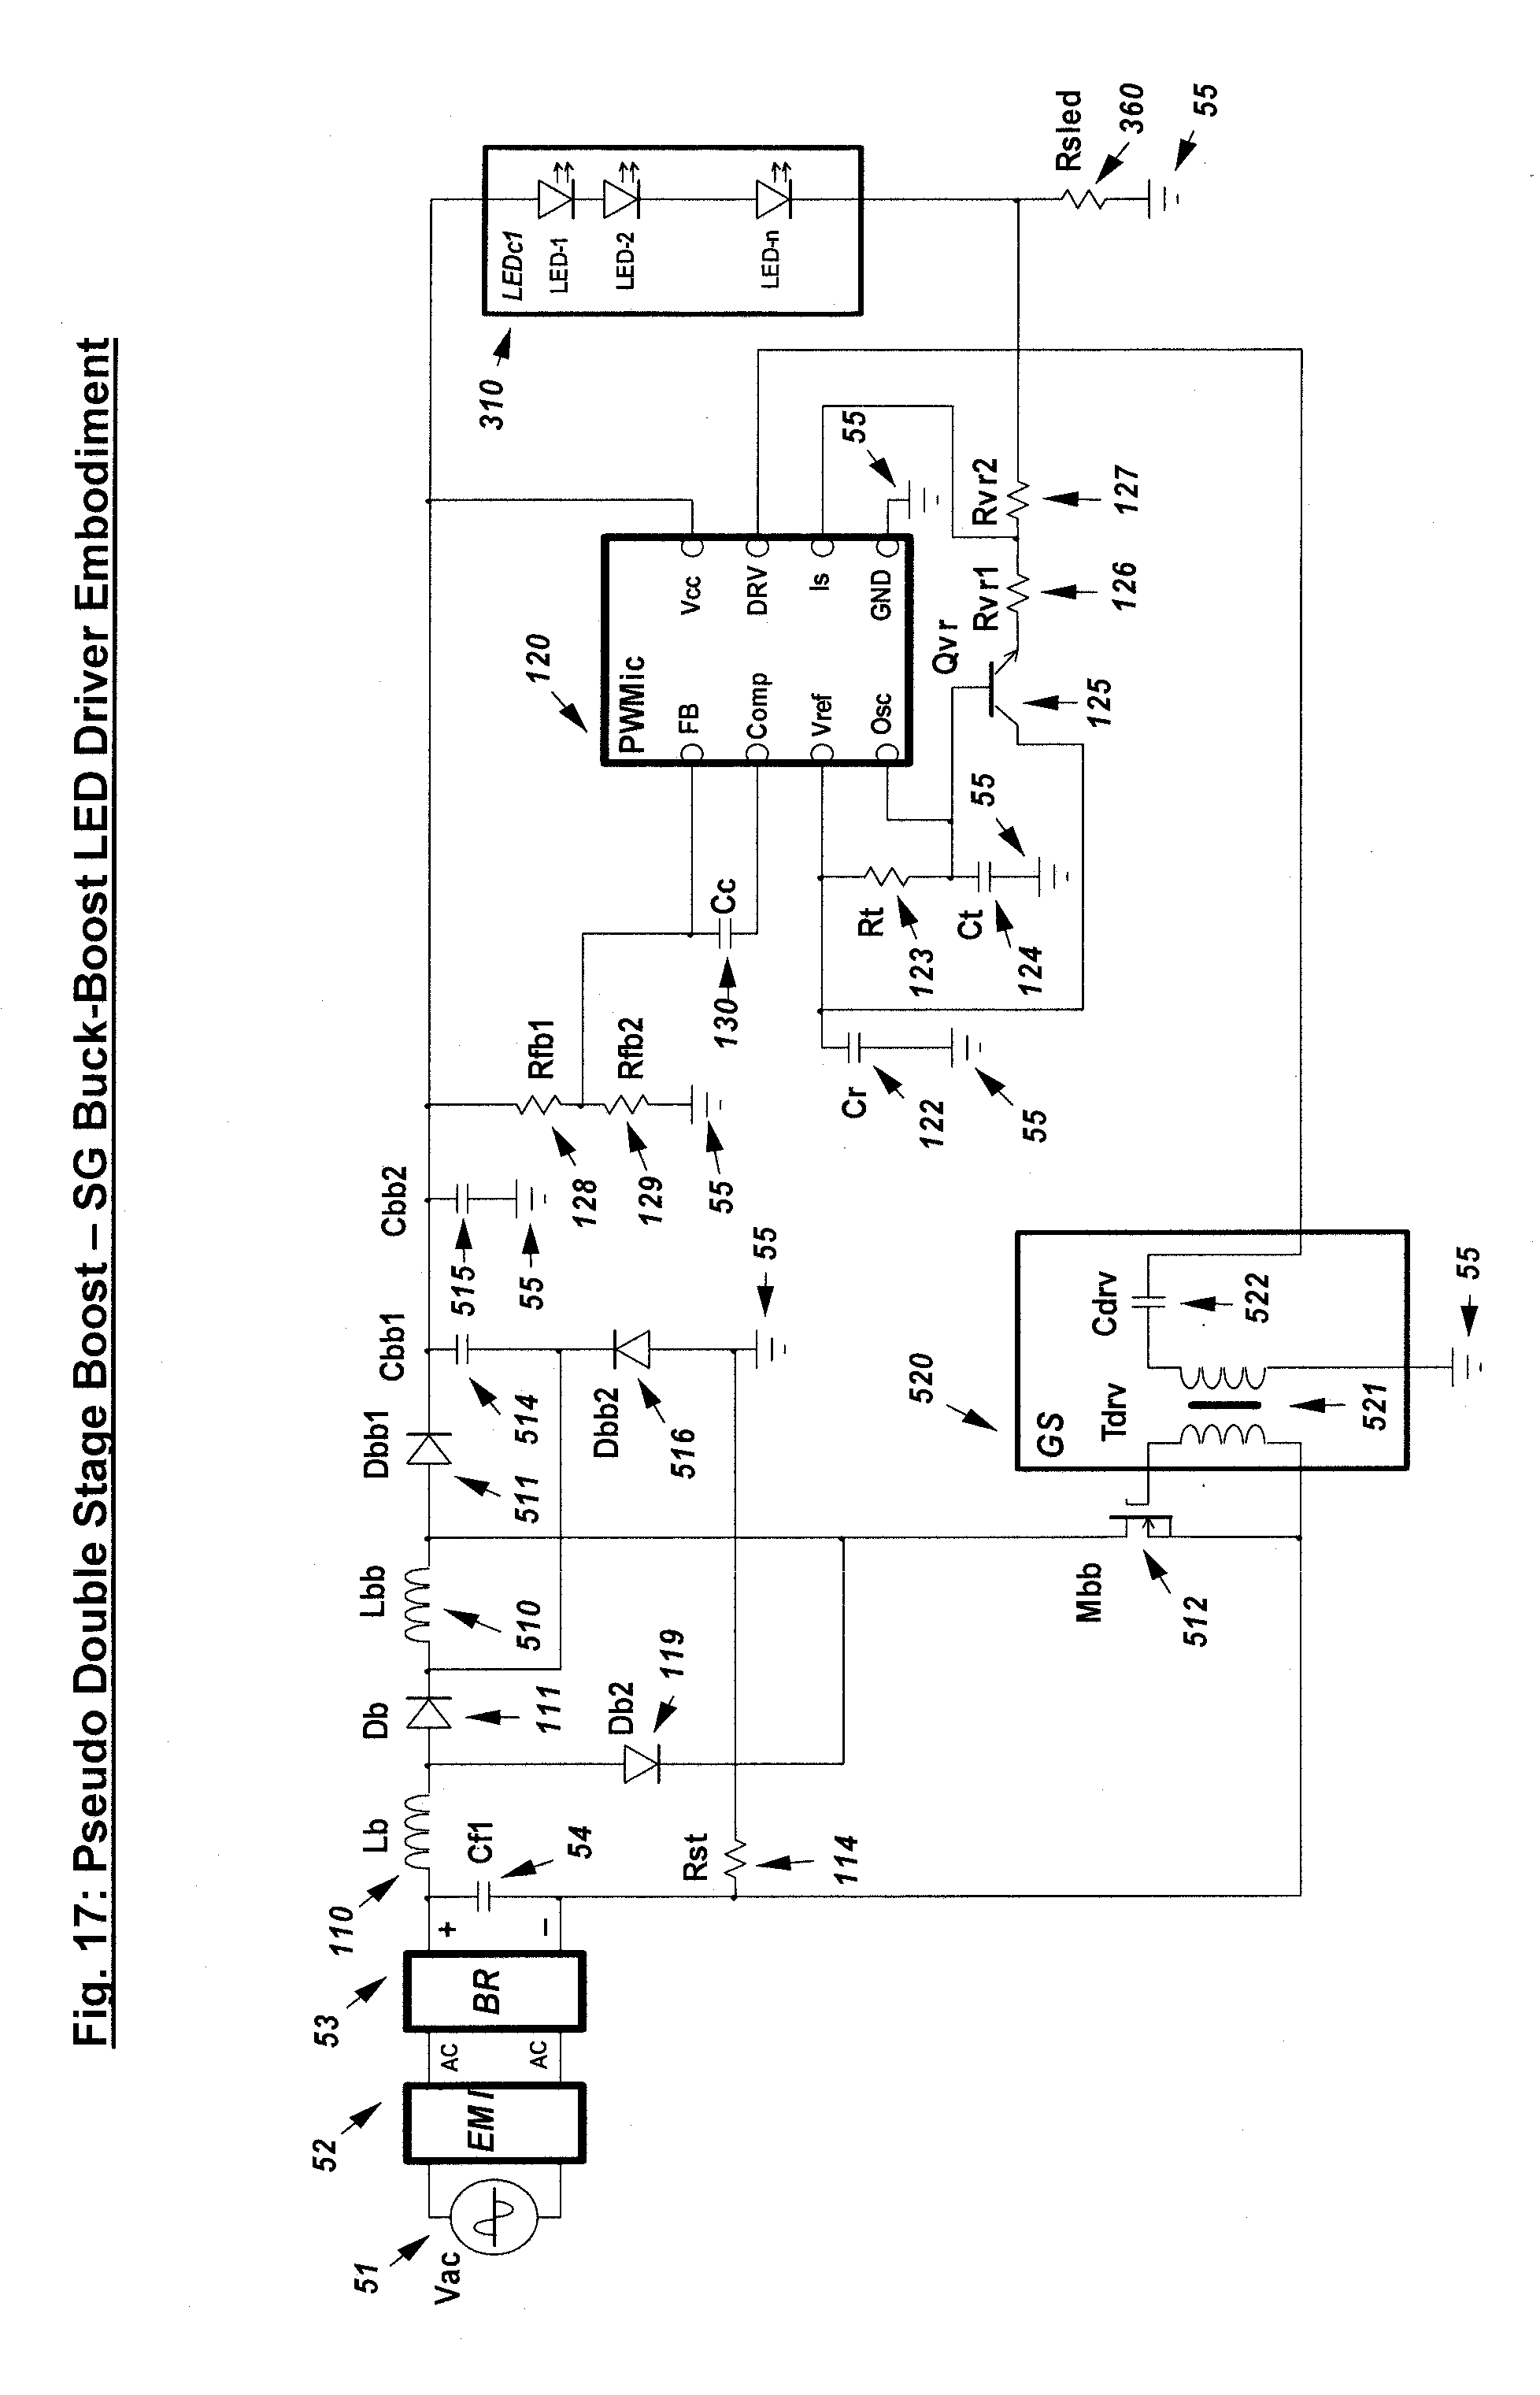 United Pacific 5007r Wiring Diagram